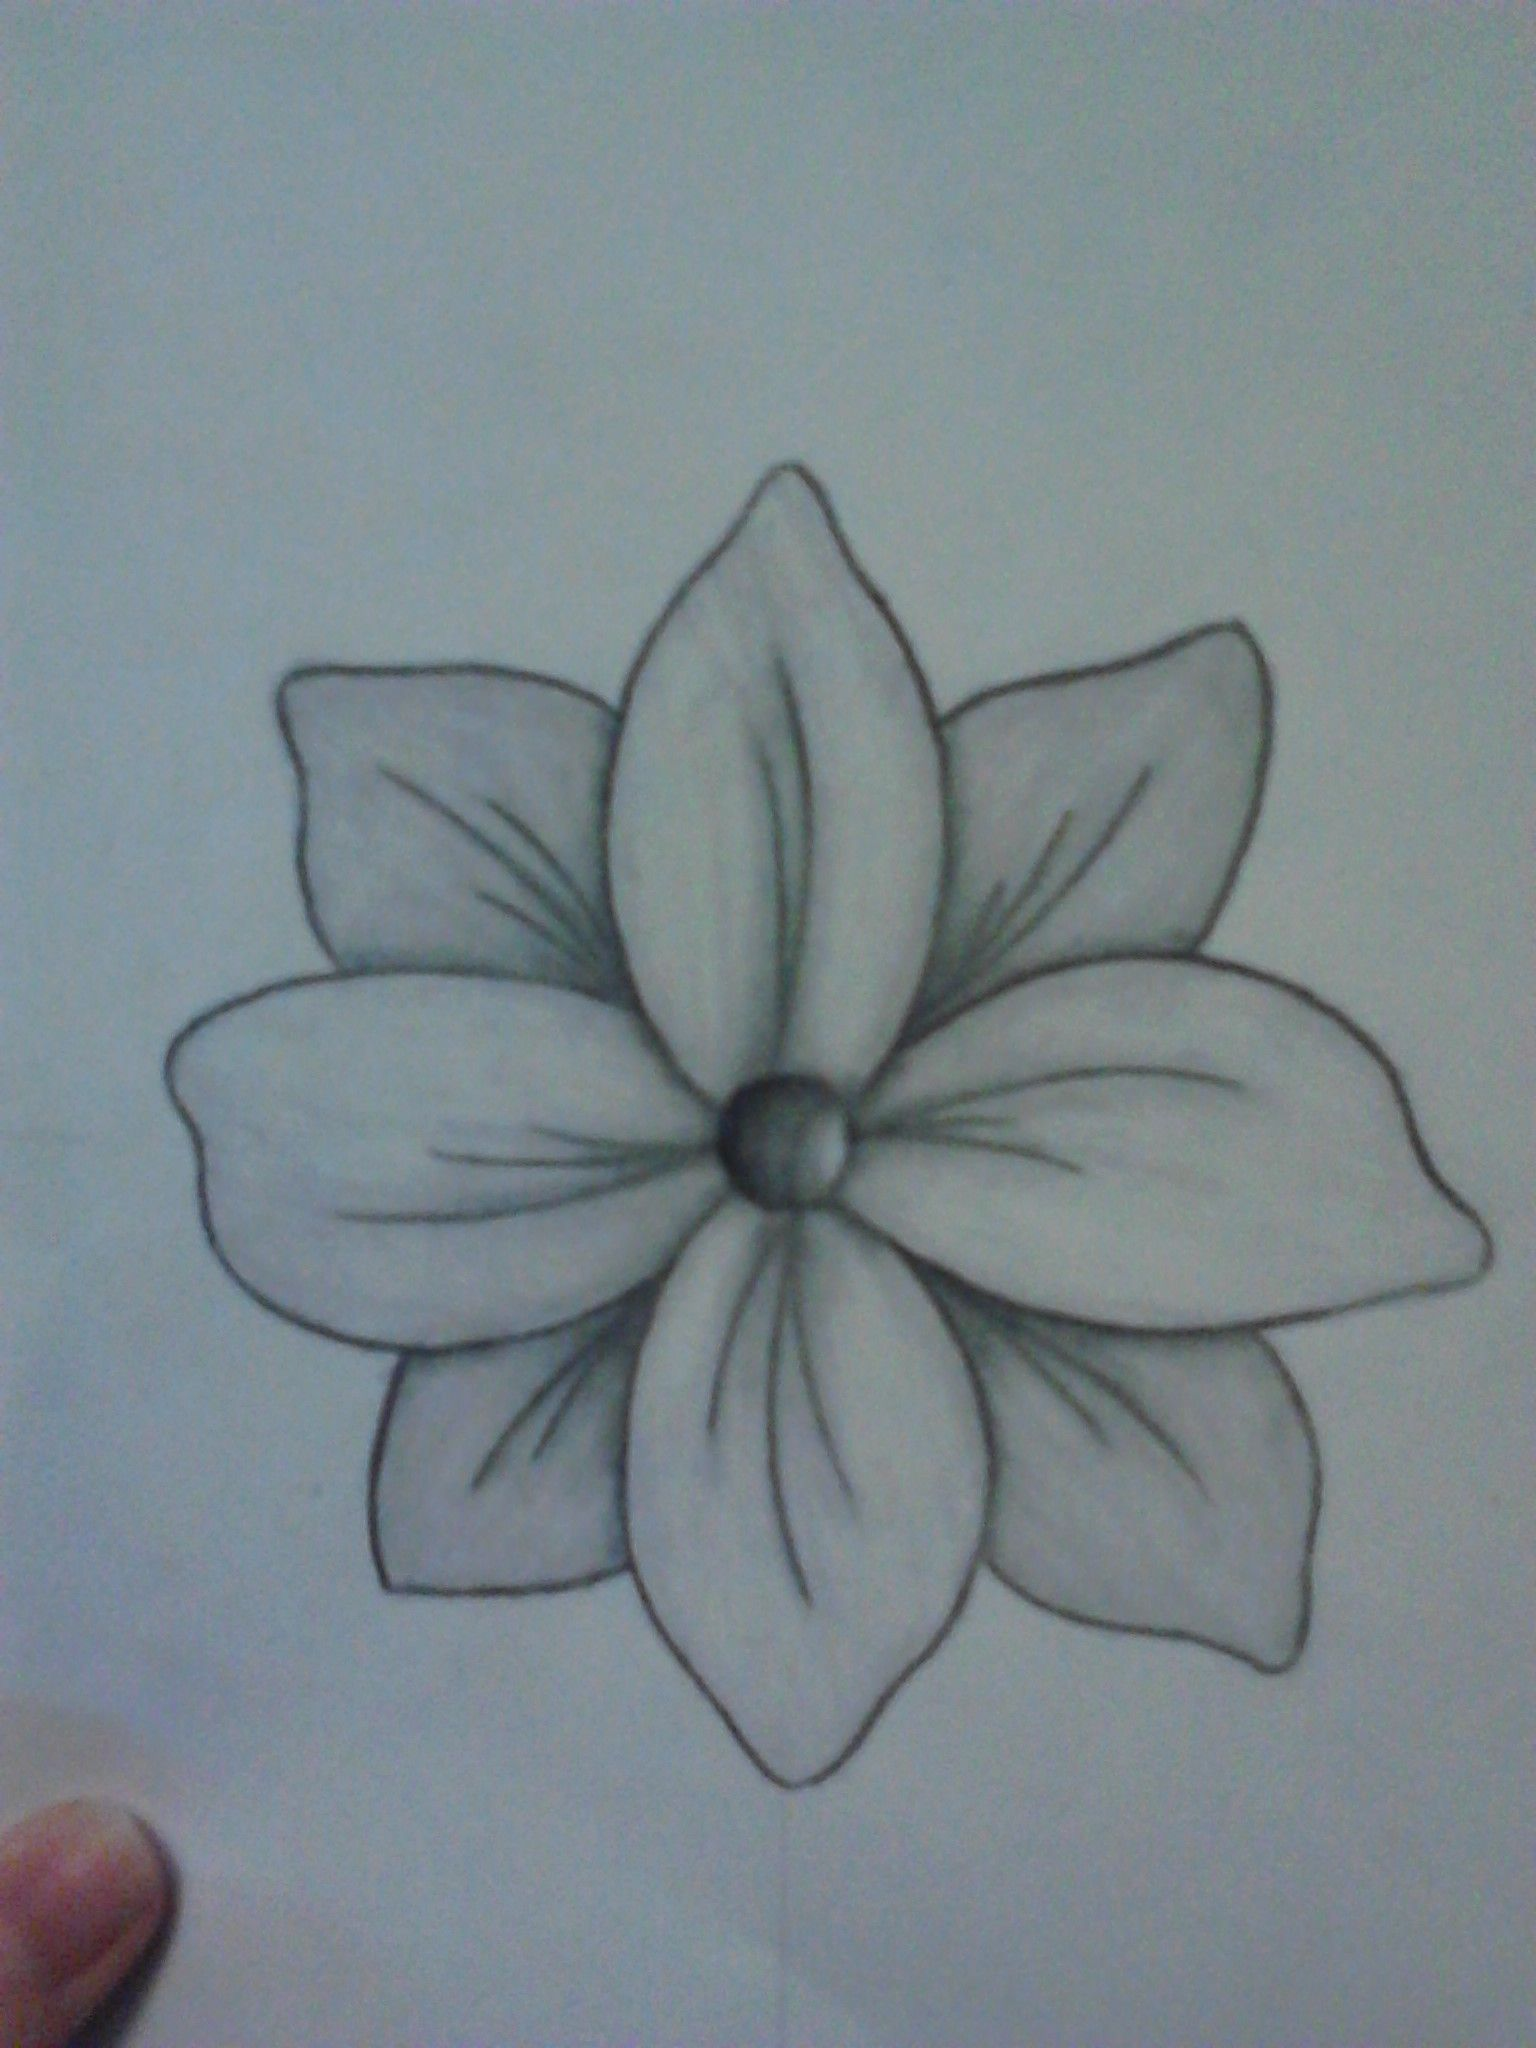 Flower Pencil Drawing Drawn By Lindsey Chapman Pencil Drawings